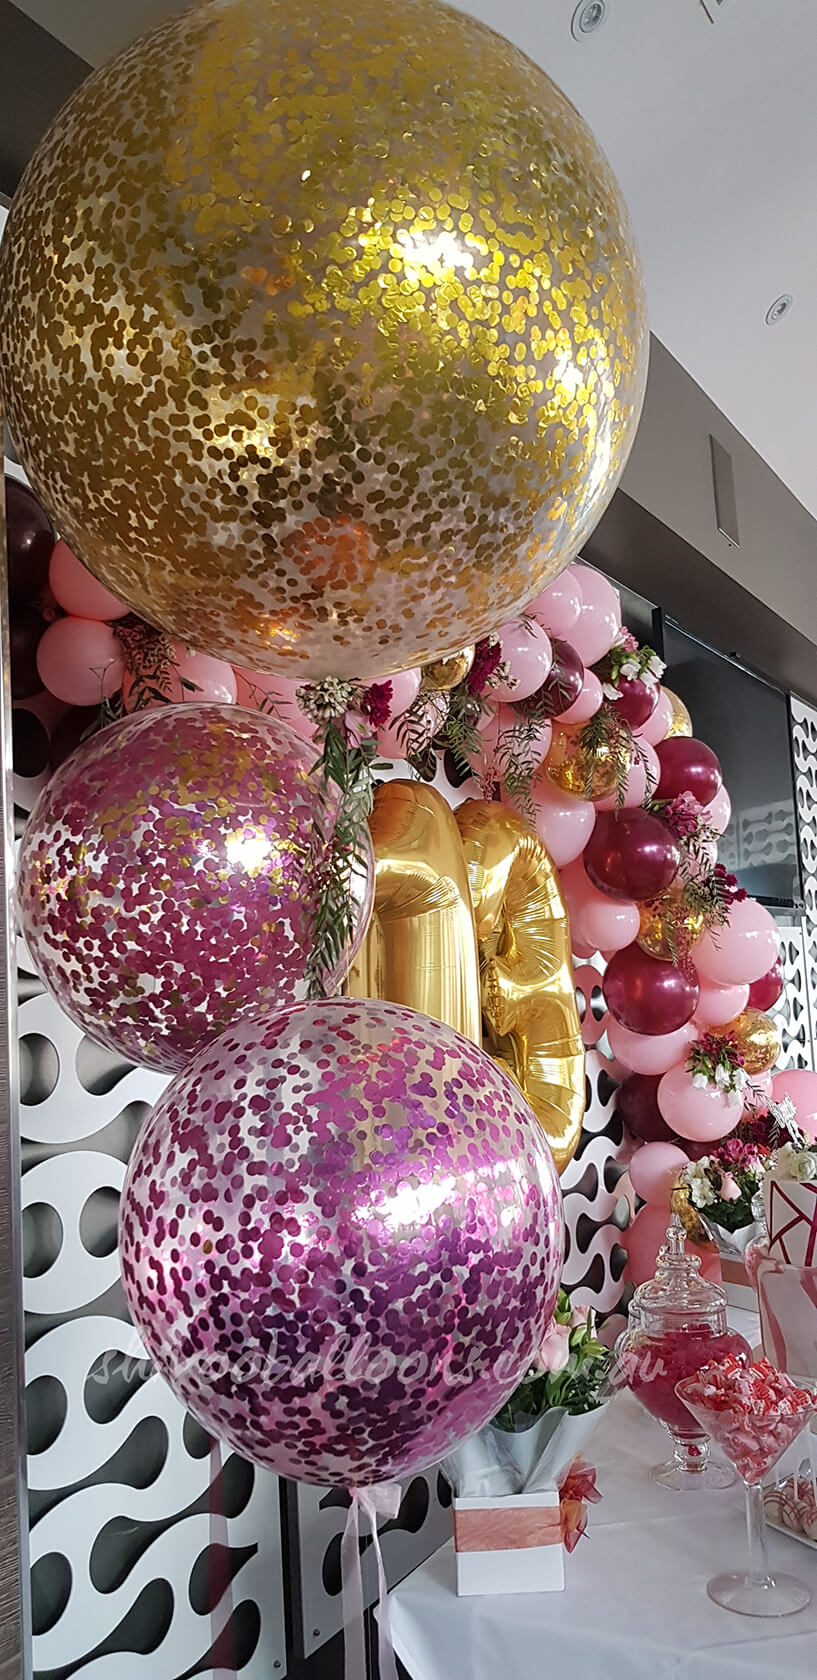 See Our Events! - image CE-44 on https://shivooballoons.com.au